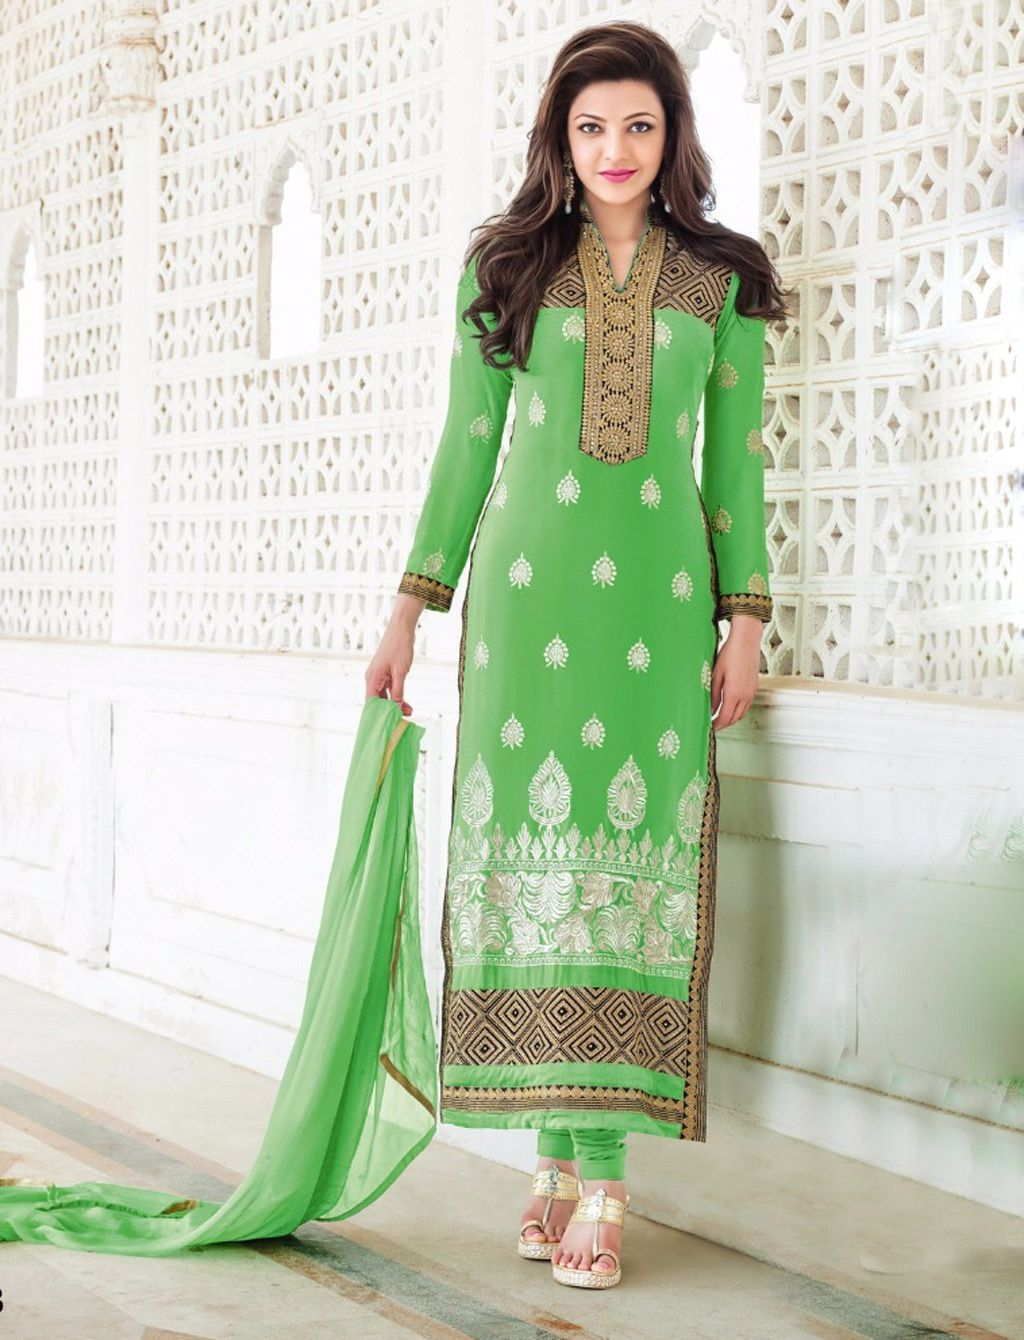 Kajal Aggarwal Green Georgette Pakistani Style Suit 57954 Fashion Dresses Dresses Green Suit